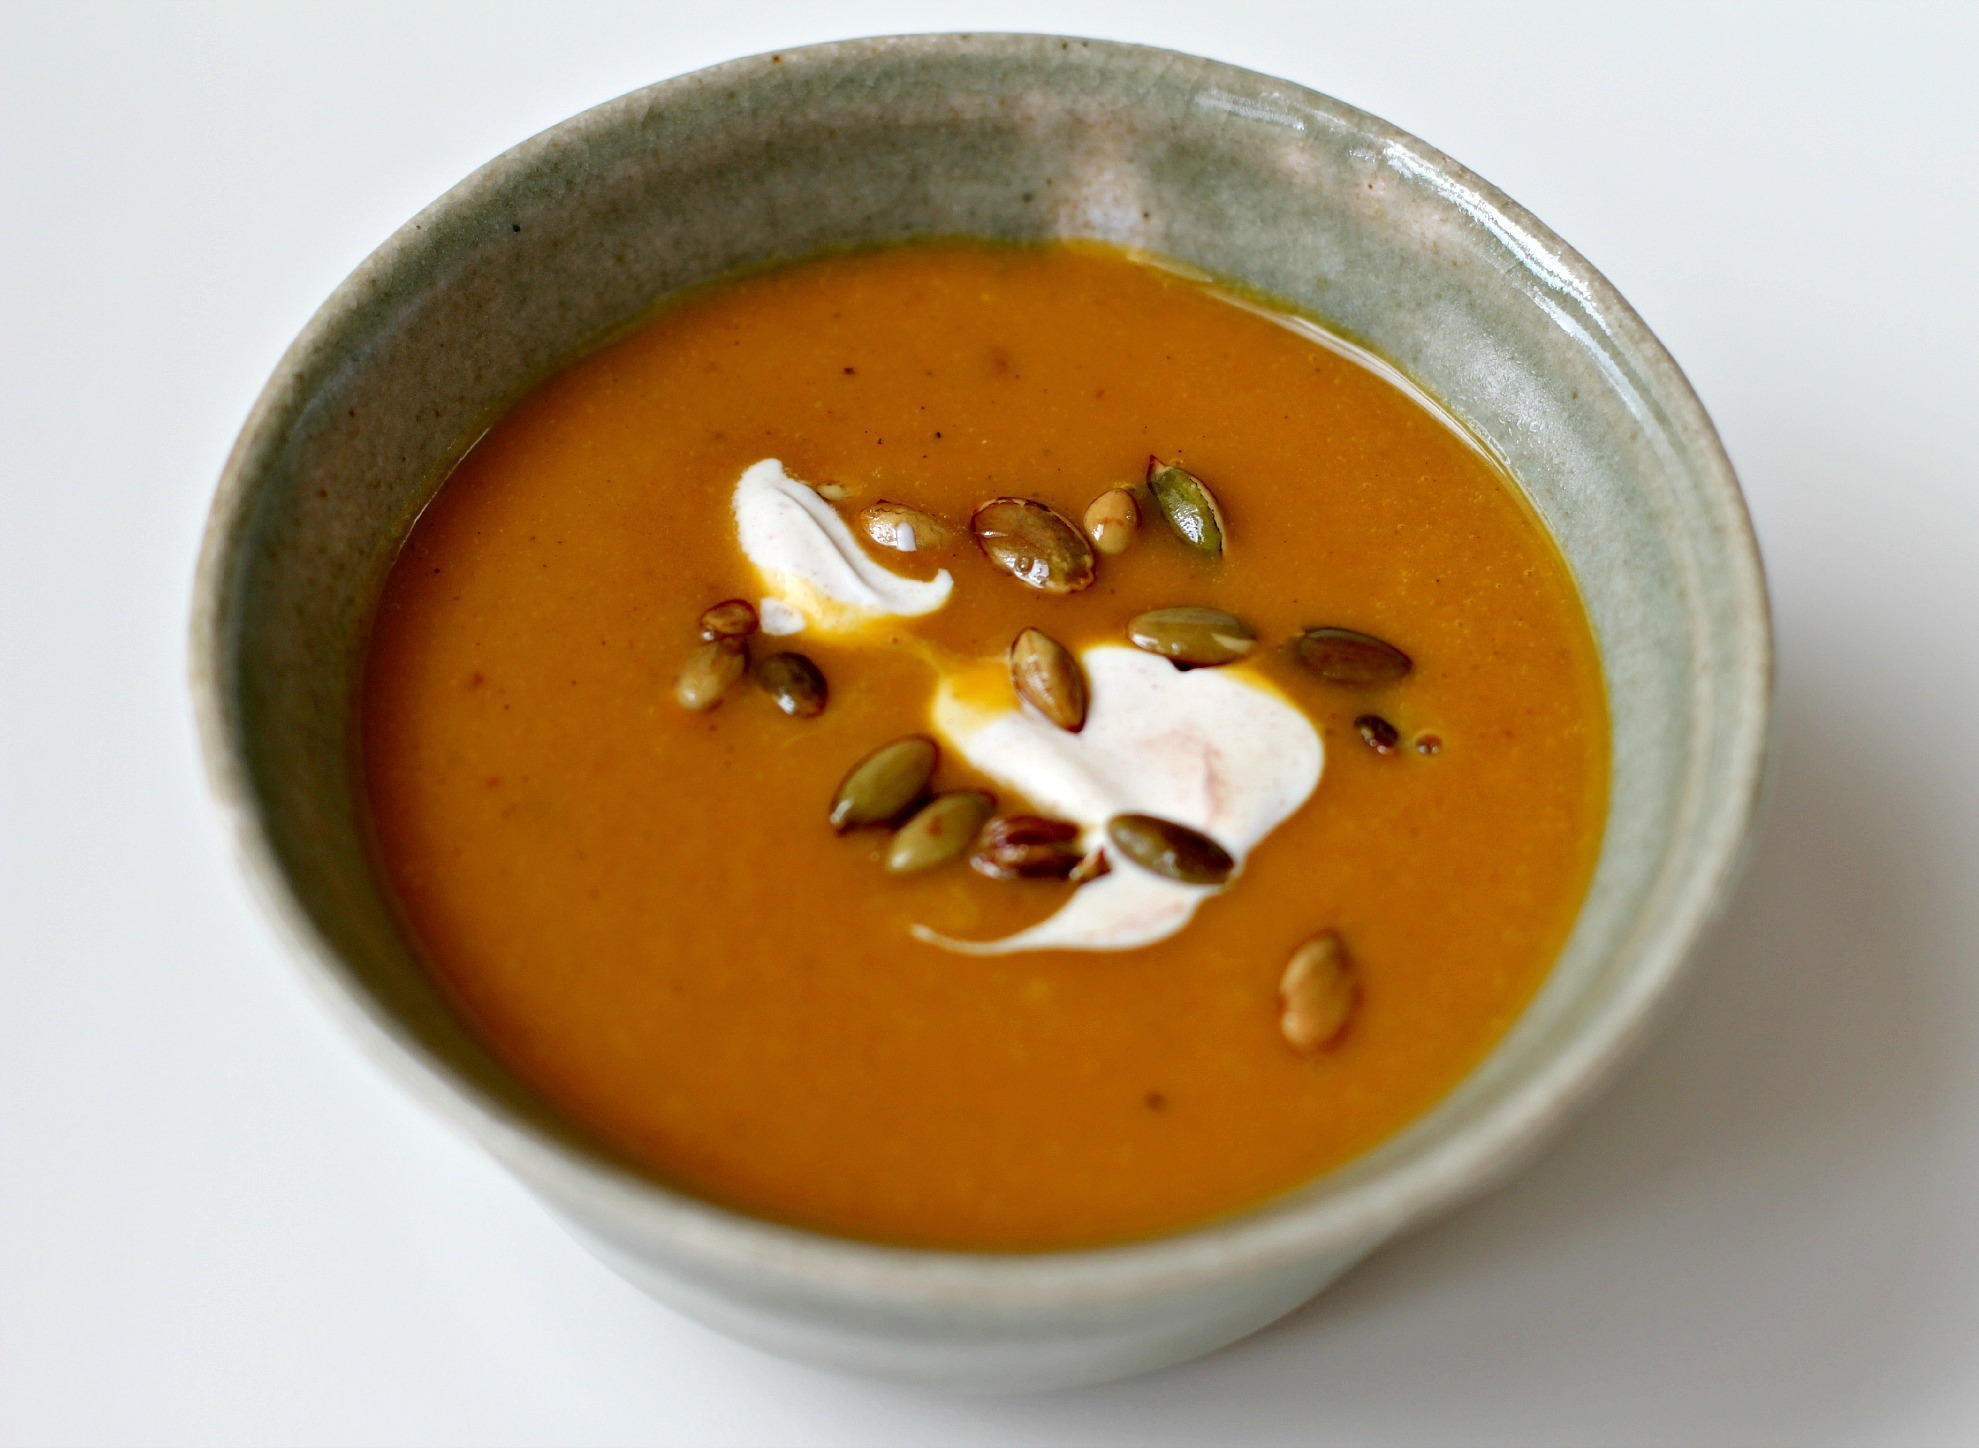 Roasted Pumpkin Soup with Cinnamon Creme Fraiche and Toasted Pumpkin Seeds